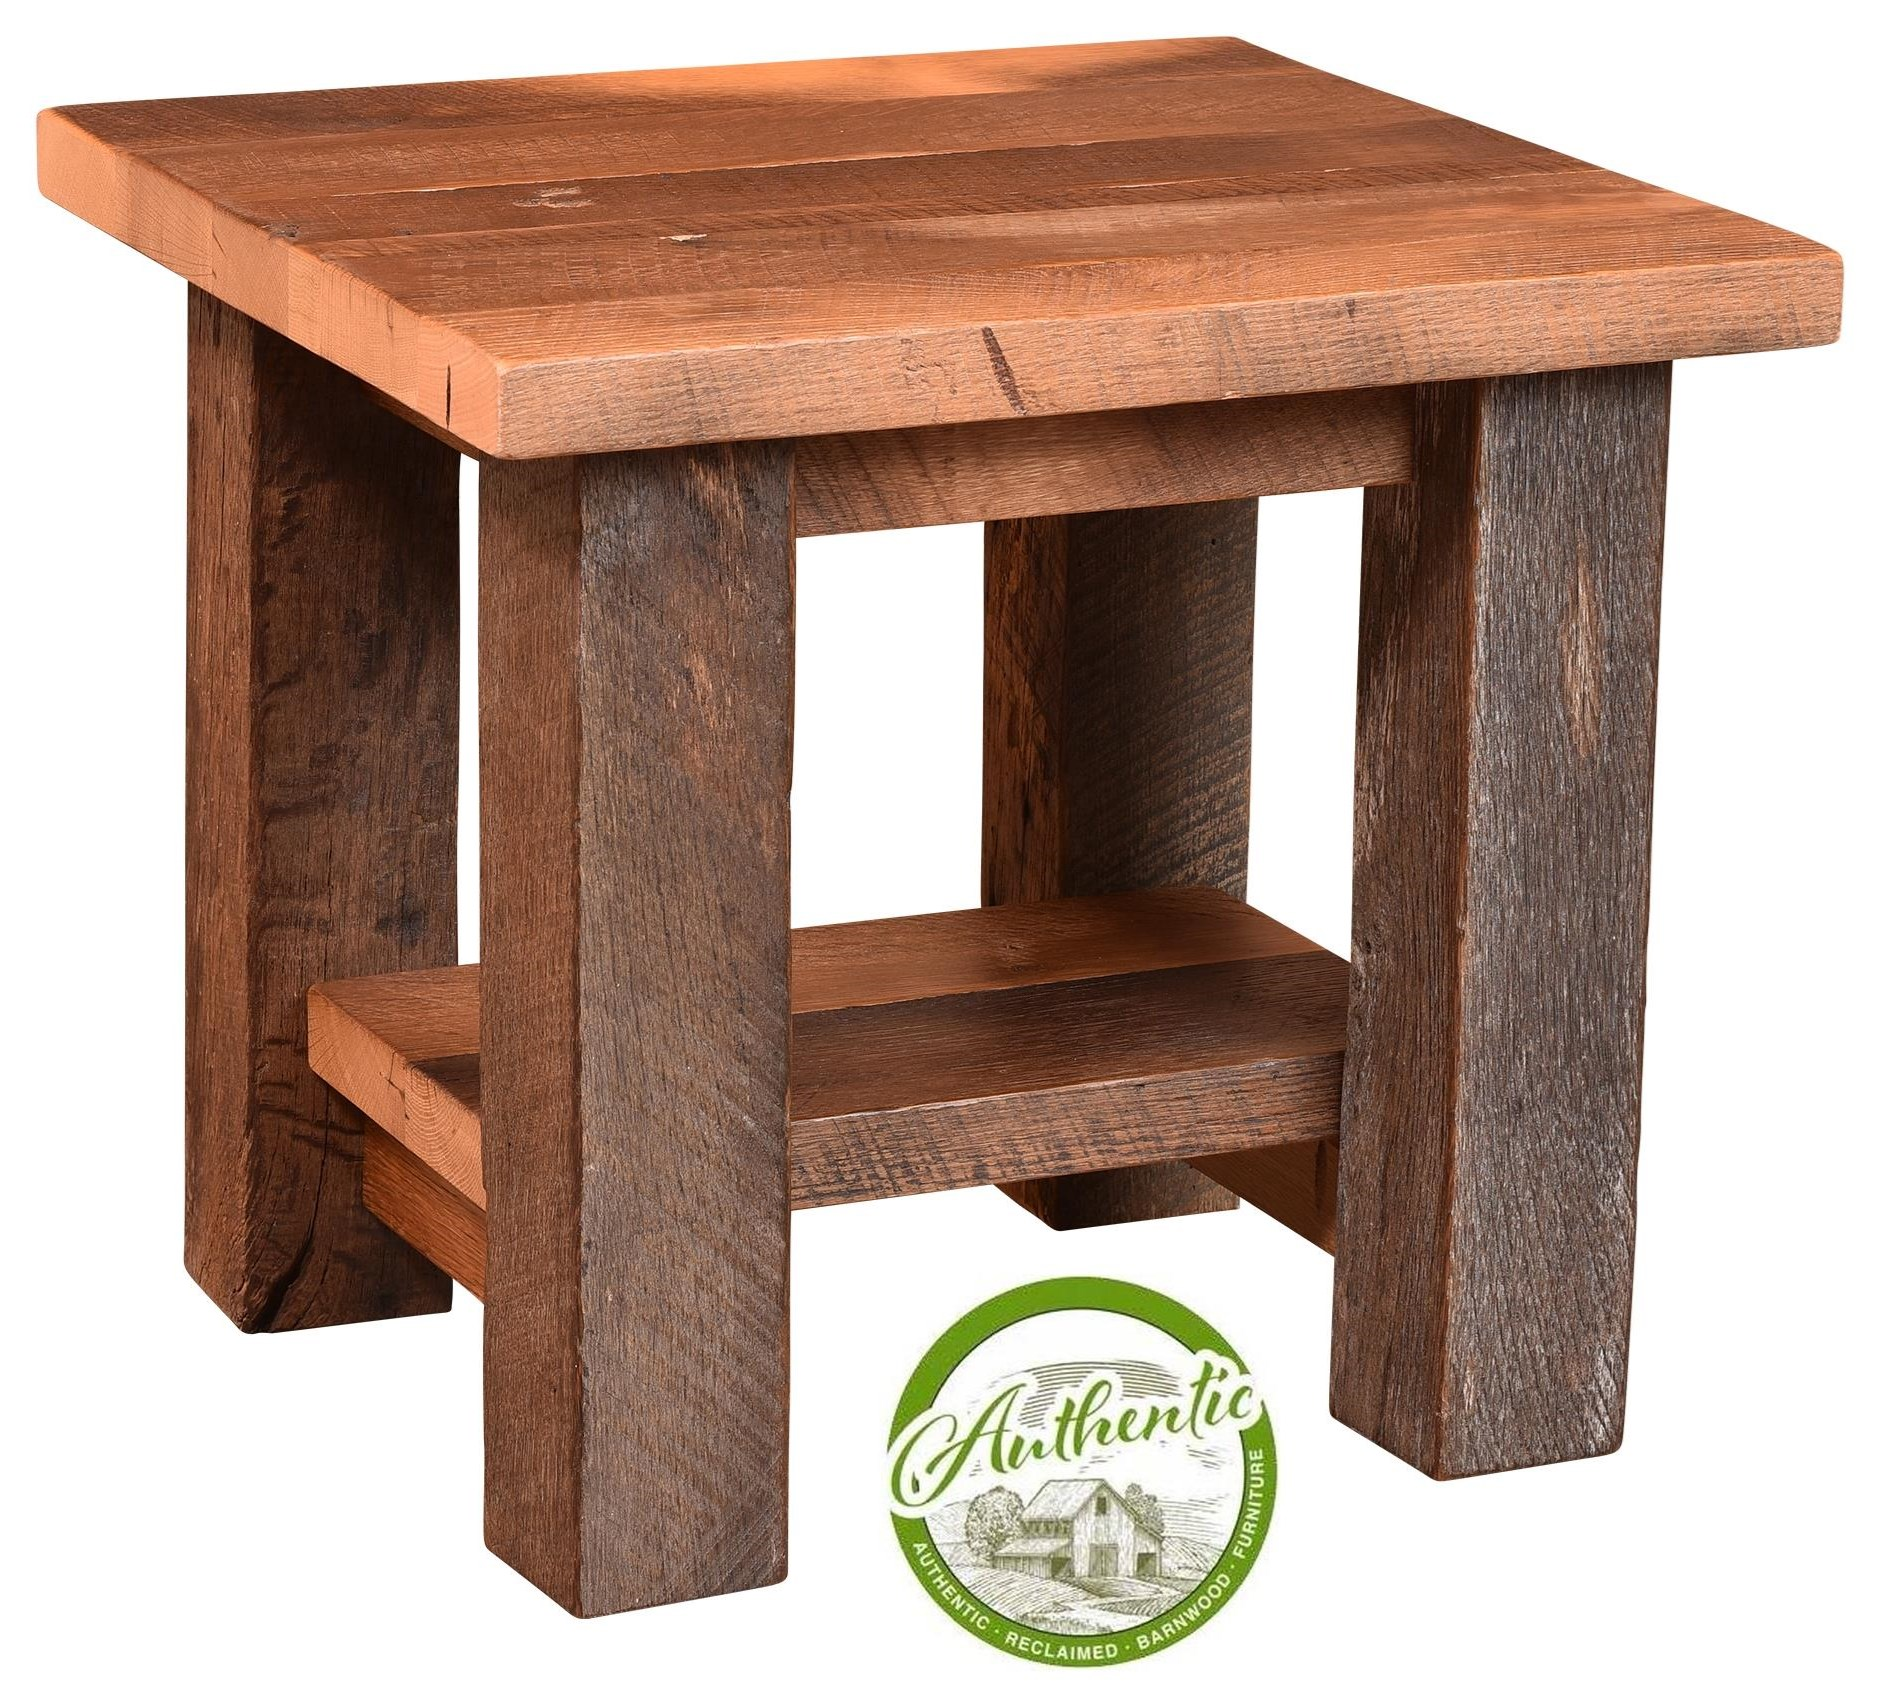 wayside custom furniture almanzo reclaimed barnwood end table products color urban aets buidoomggiusklzufqpbvaa accent luxury tablecloths high gloss side brass and marble leick